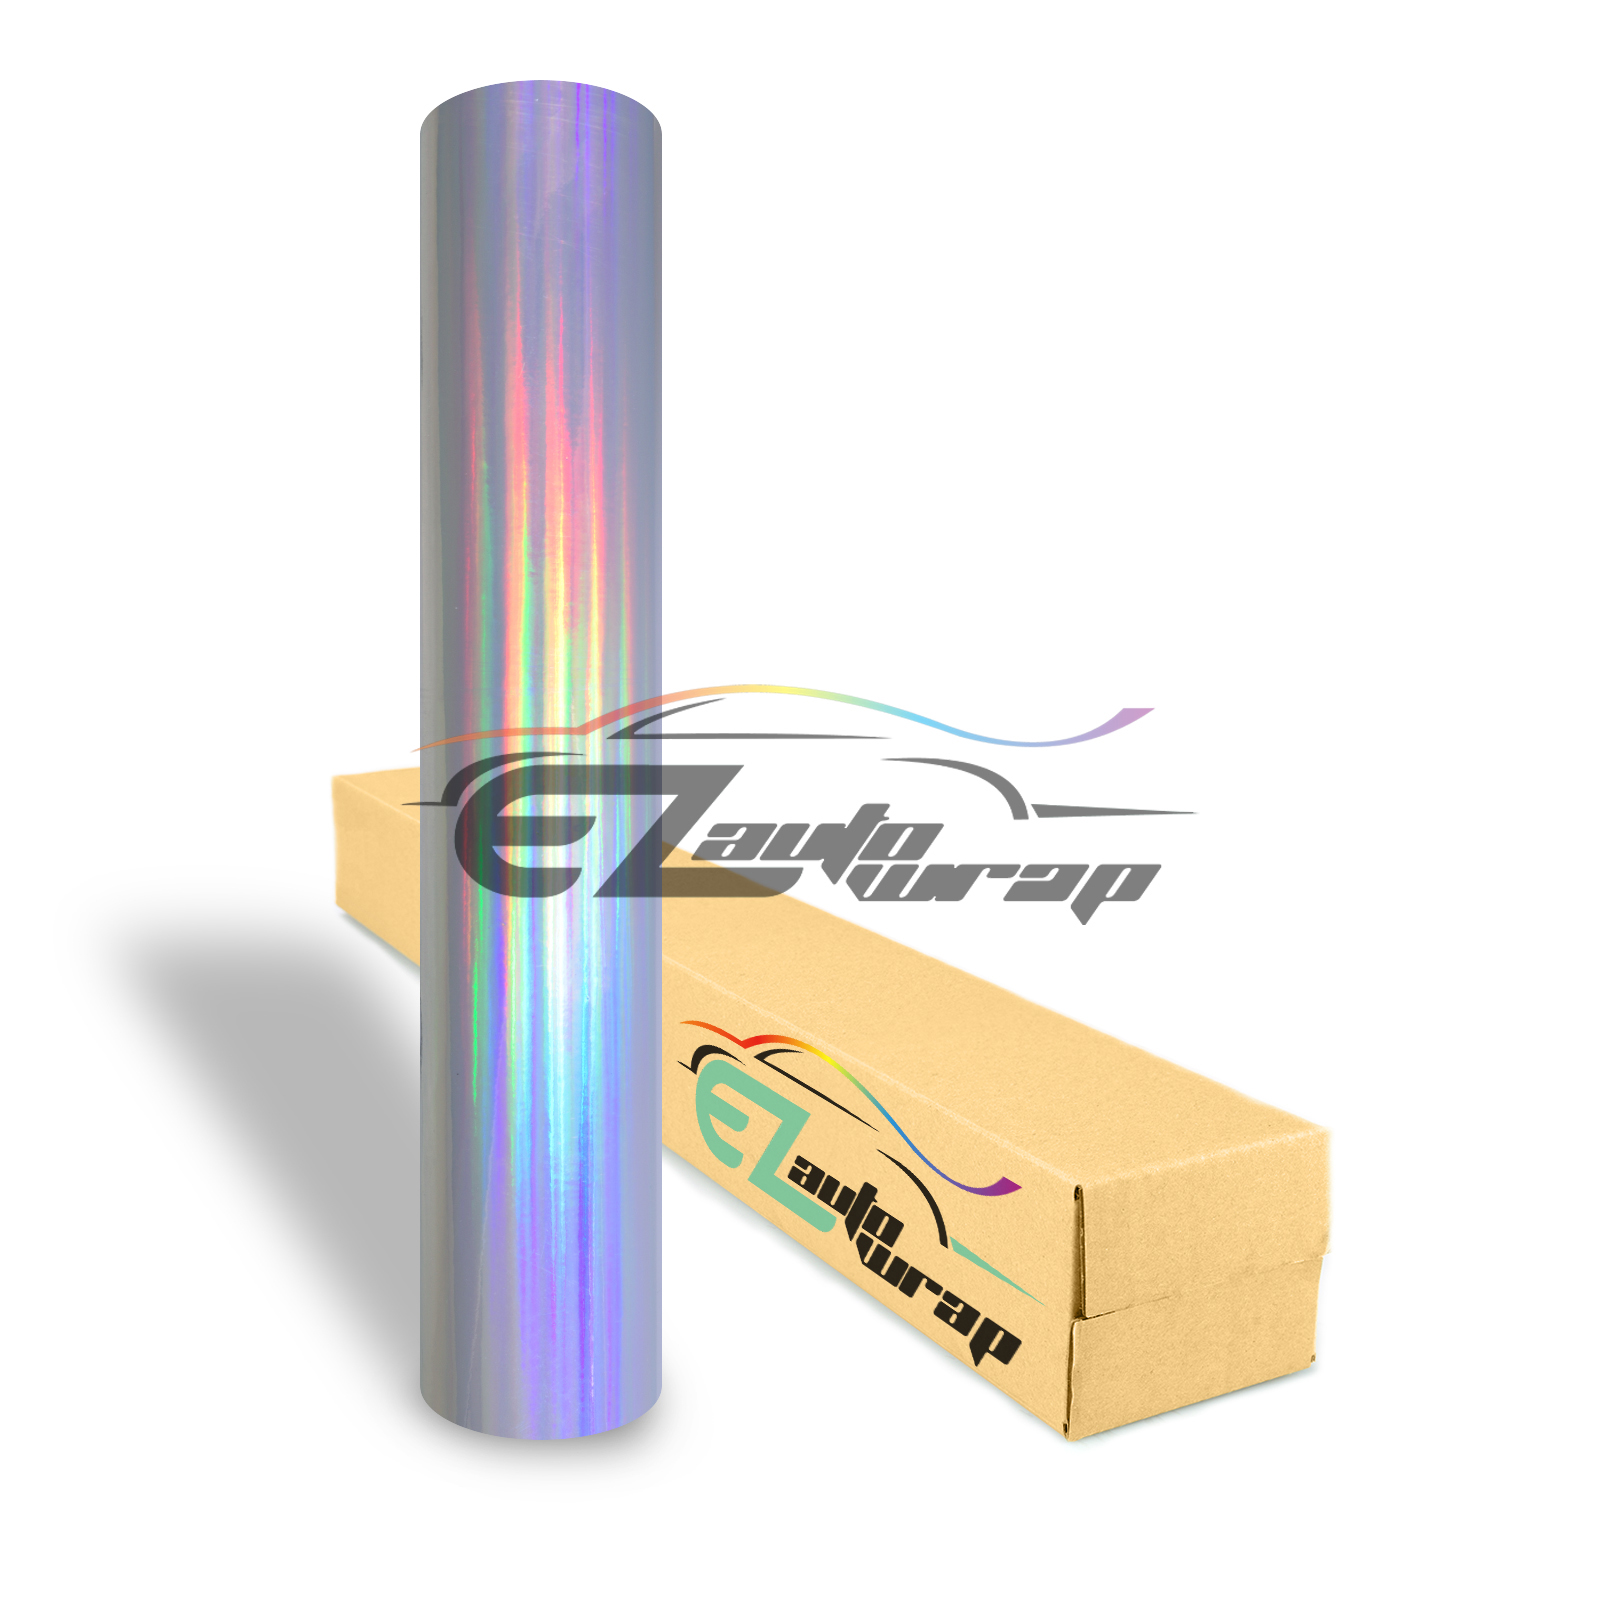 EZAUTOWRAP Holographic Silver Rainbow Neo Chrome Car Vinyl Wrap Vehicle Sticker Decal Film Sheet With Air Release Technology